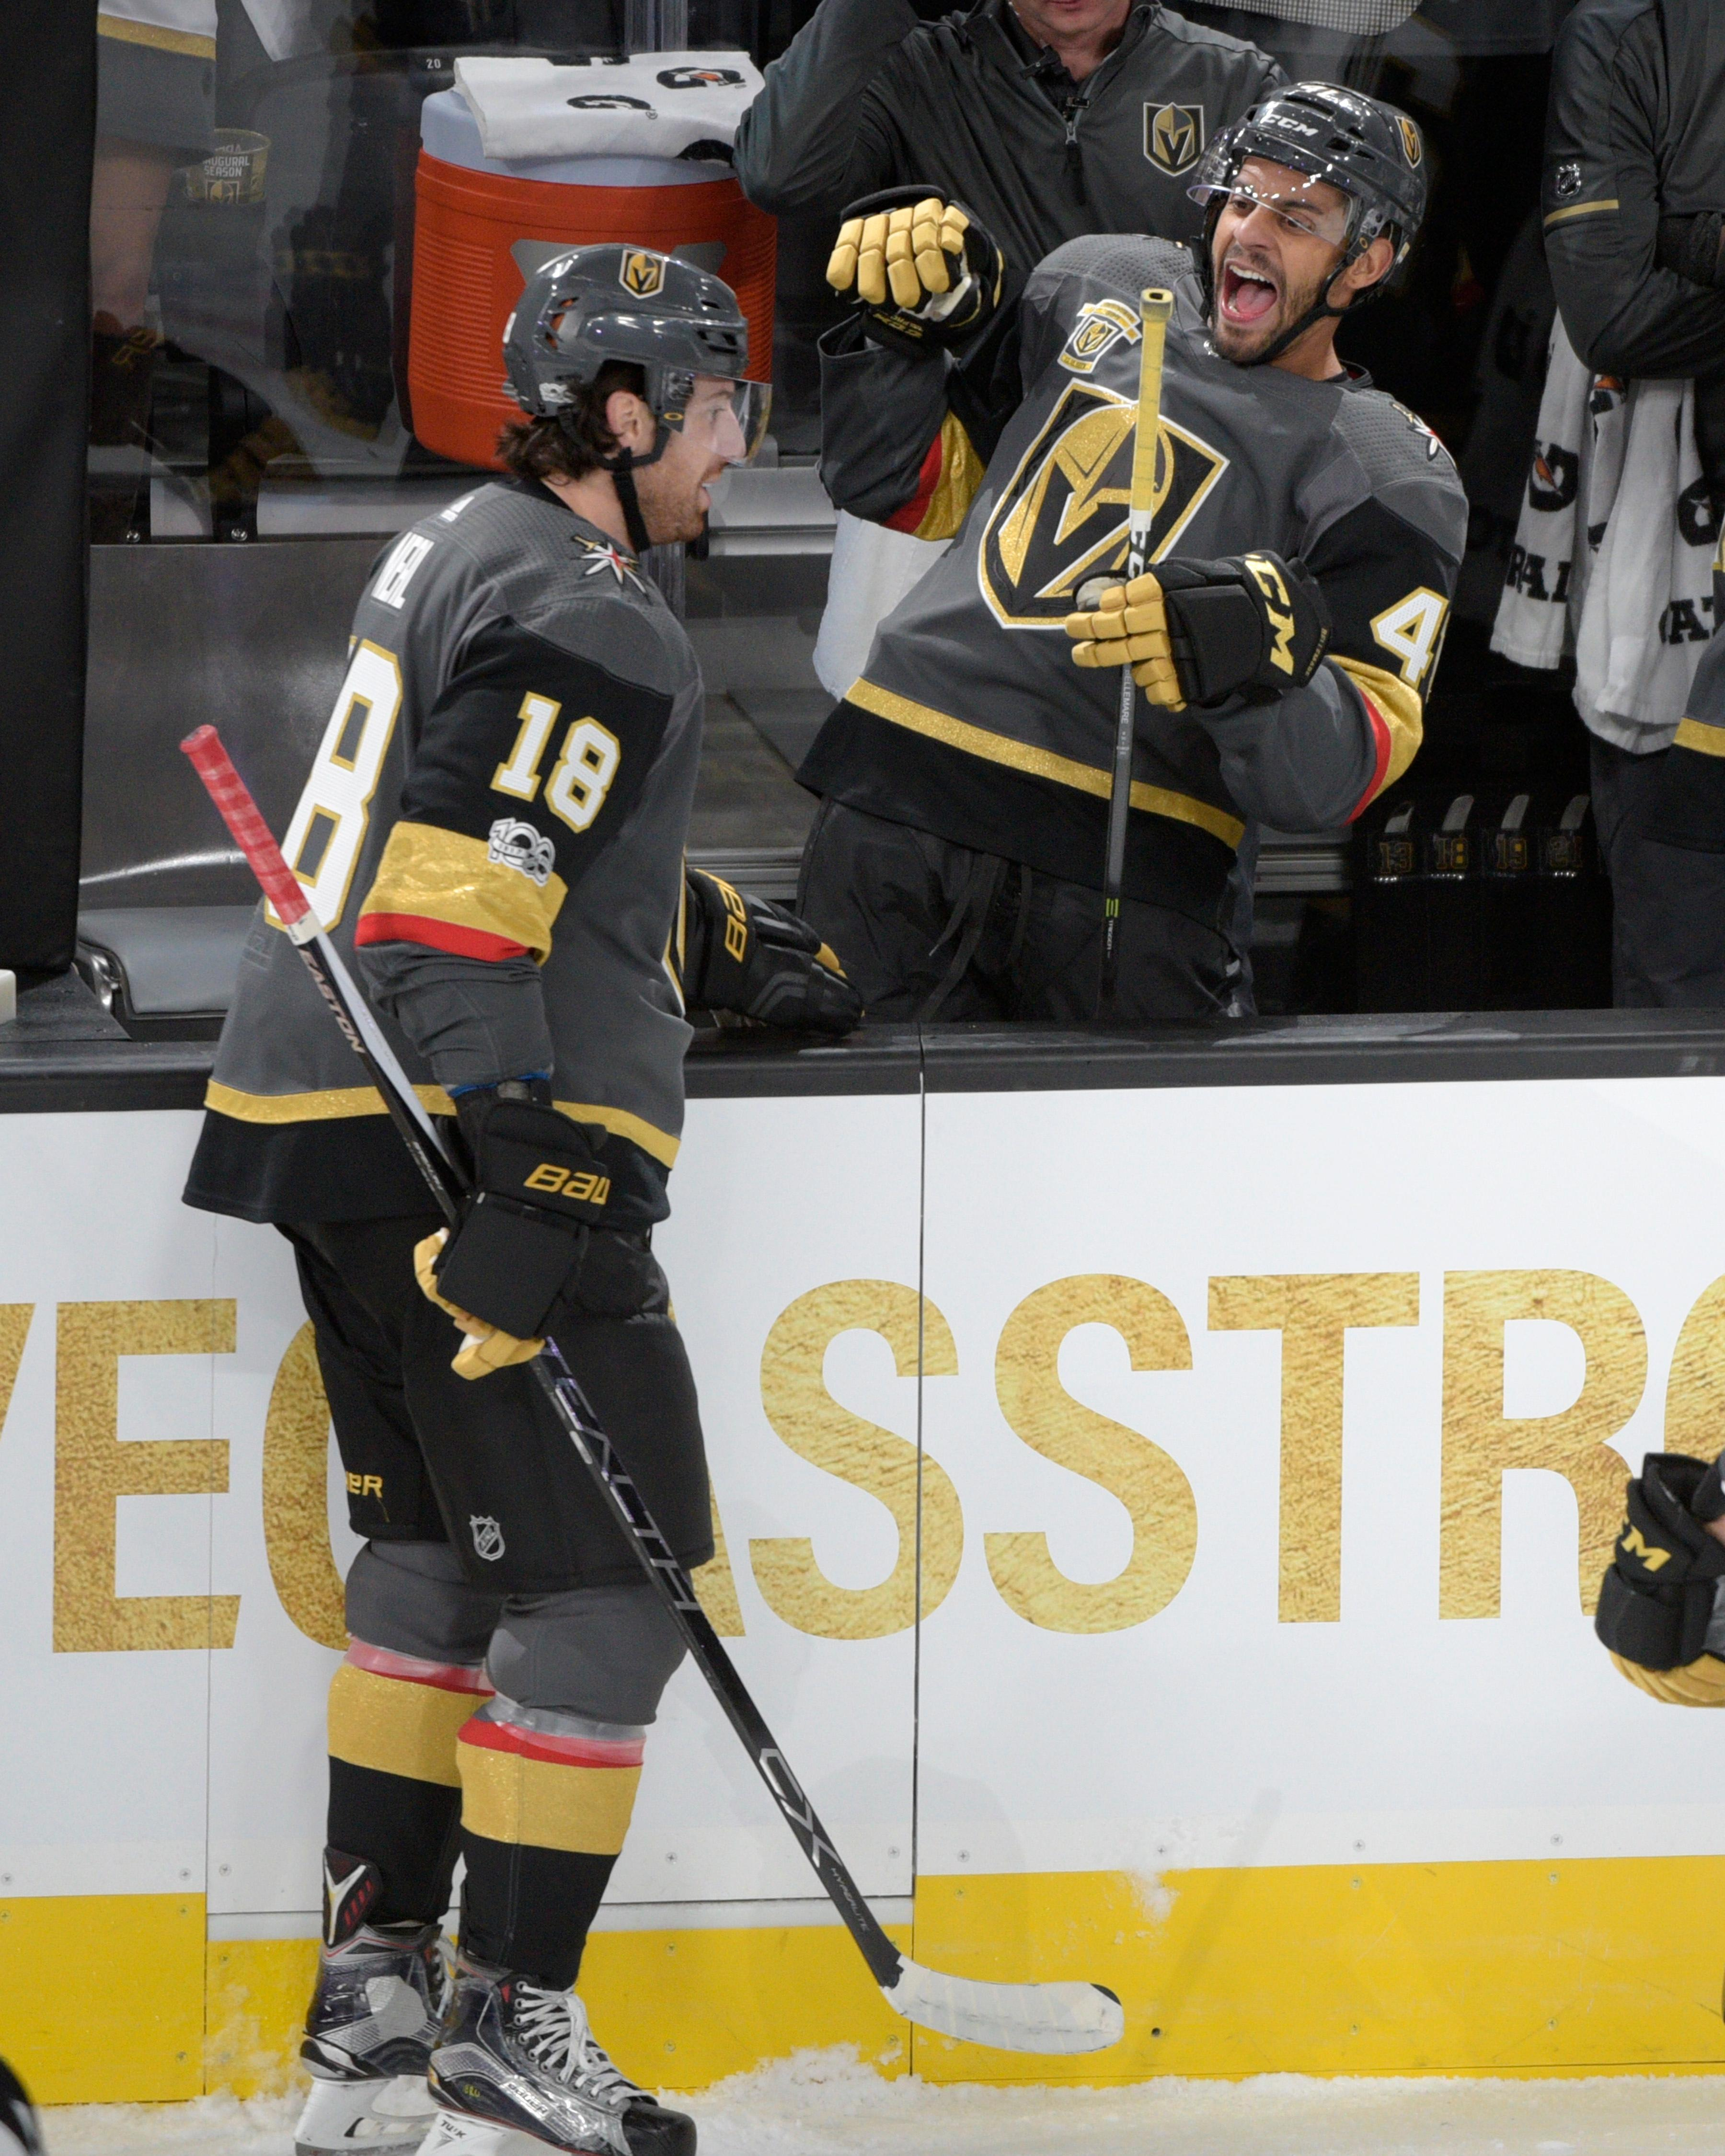 Vegas Golden Knights defenseman Clayton Stoner (4) celebrates Vegas Golden Knights right wing James Neal's (18) goal against the Arizona Coyotes during the Knights home opener Tuesday, Oct. 10, 2017, at the T-Mobile Arena. The Knights won 5-2 to extend their winning streak to 3-0. CREDIT: Sam Morris/Las Vegas News Bureau